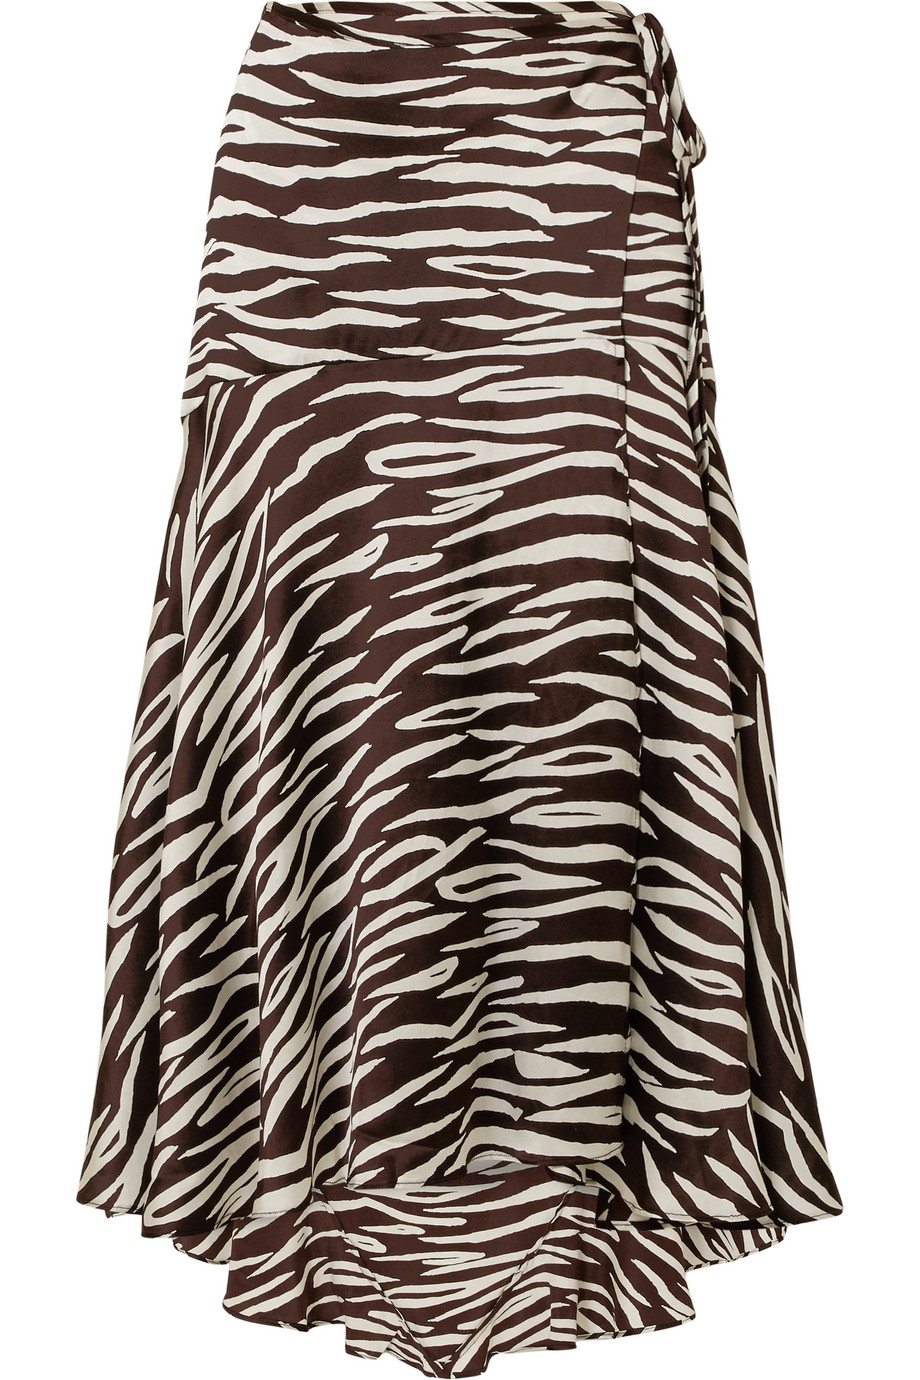 "gianni zebra-print wrap skirt  -- Amanda Norgaard wore GANNI's 'Blakely' skirt to Copenhagen Fashion Week and playfully captioned her Instagram post with ""a lioness disguised as a zebra."" Made from stretchy brown and white silk-satin, it's cut in the brand's signature wrap shape and has a swishy asymmetric hem. Keep your accessories and makeup to a minimum when wearing the print from head-to-toe."